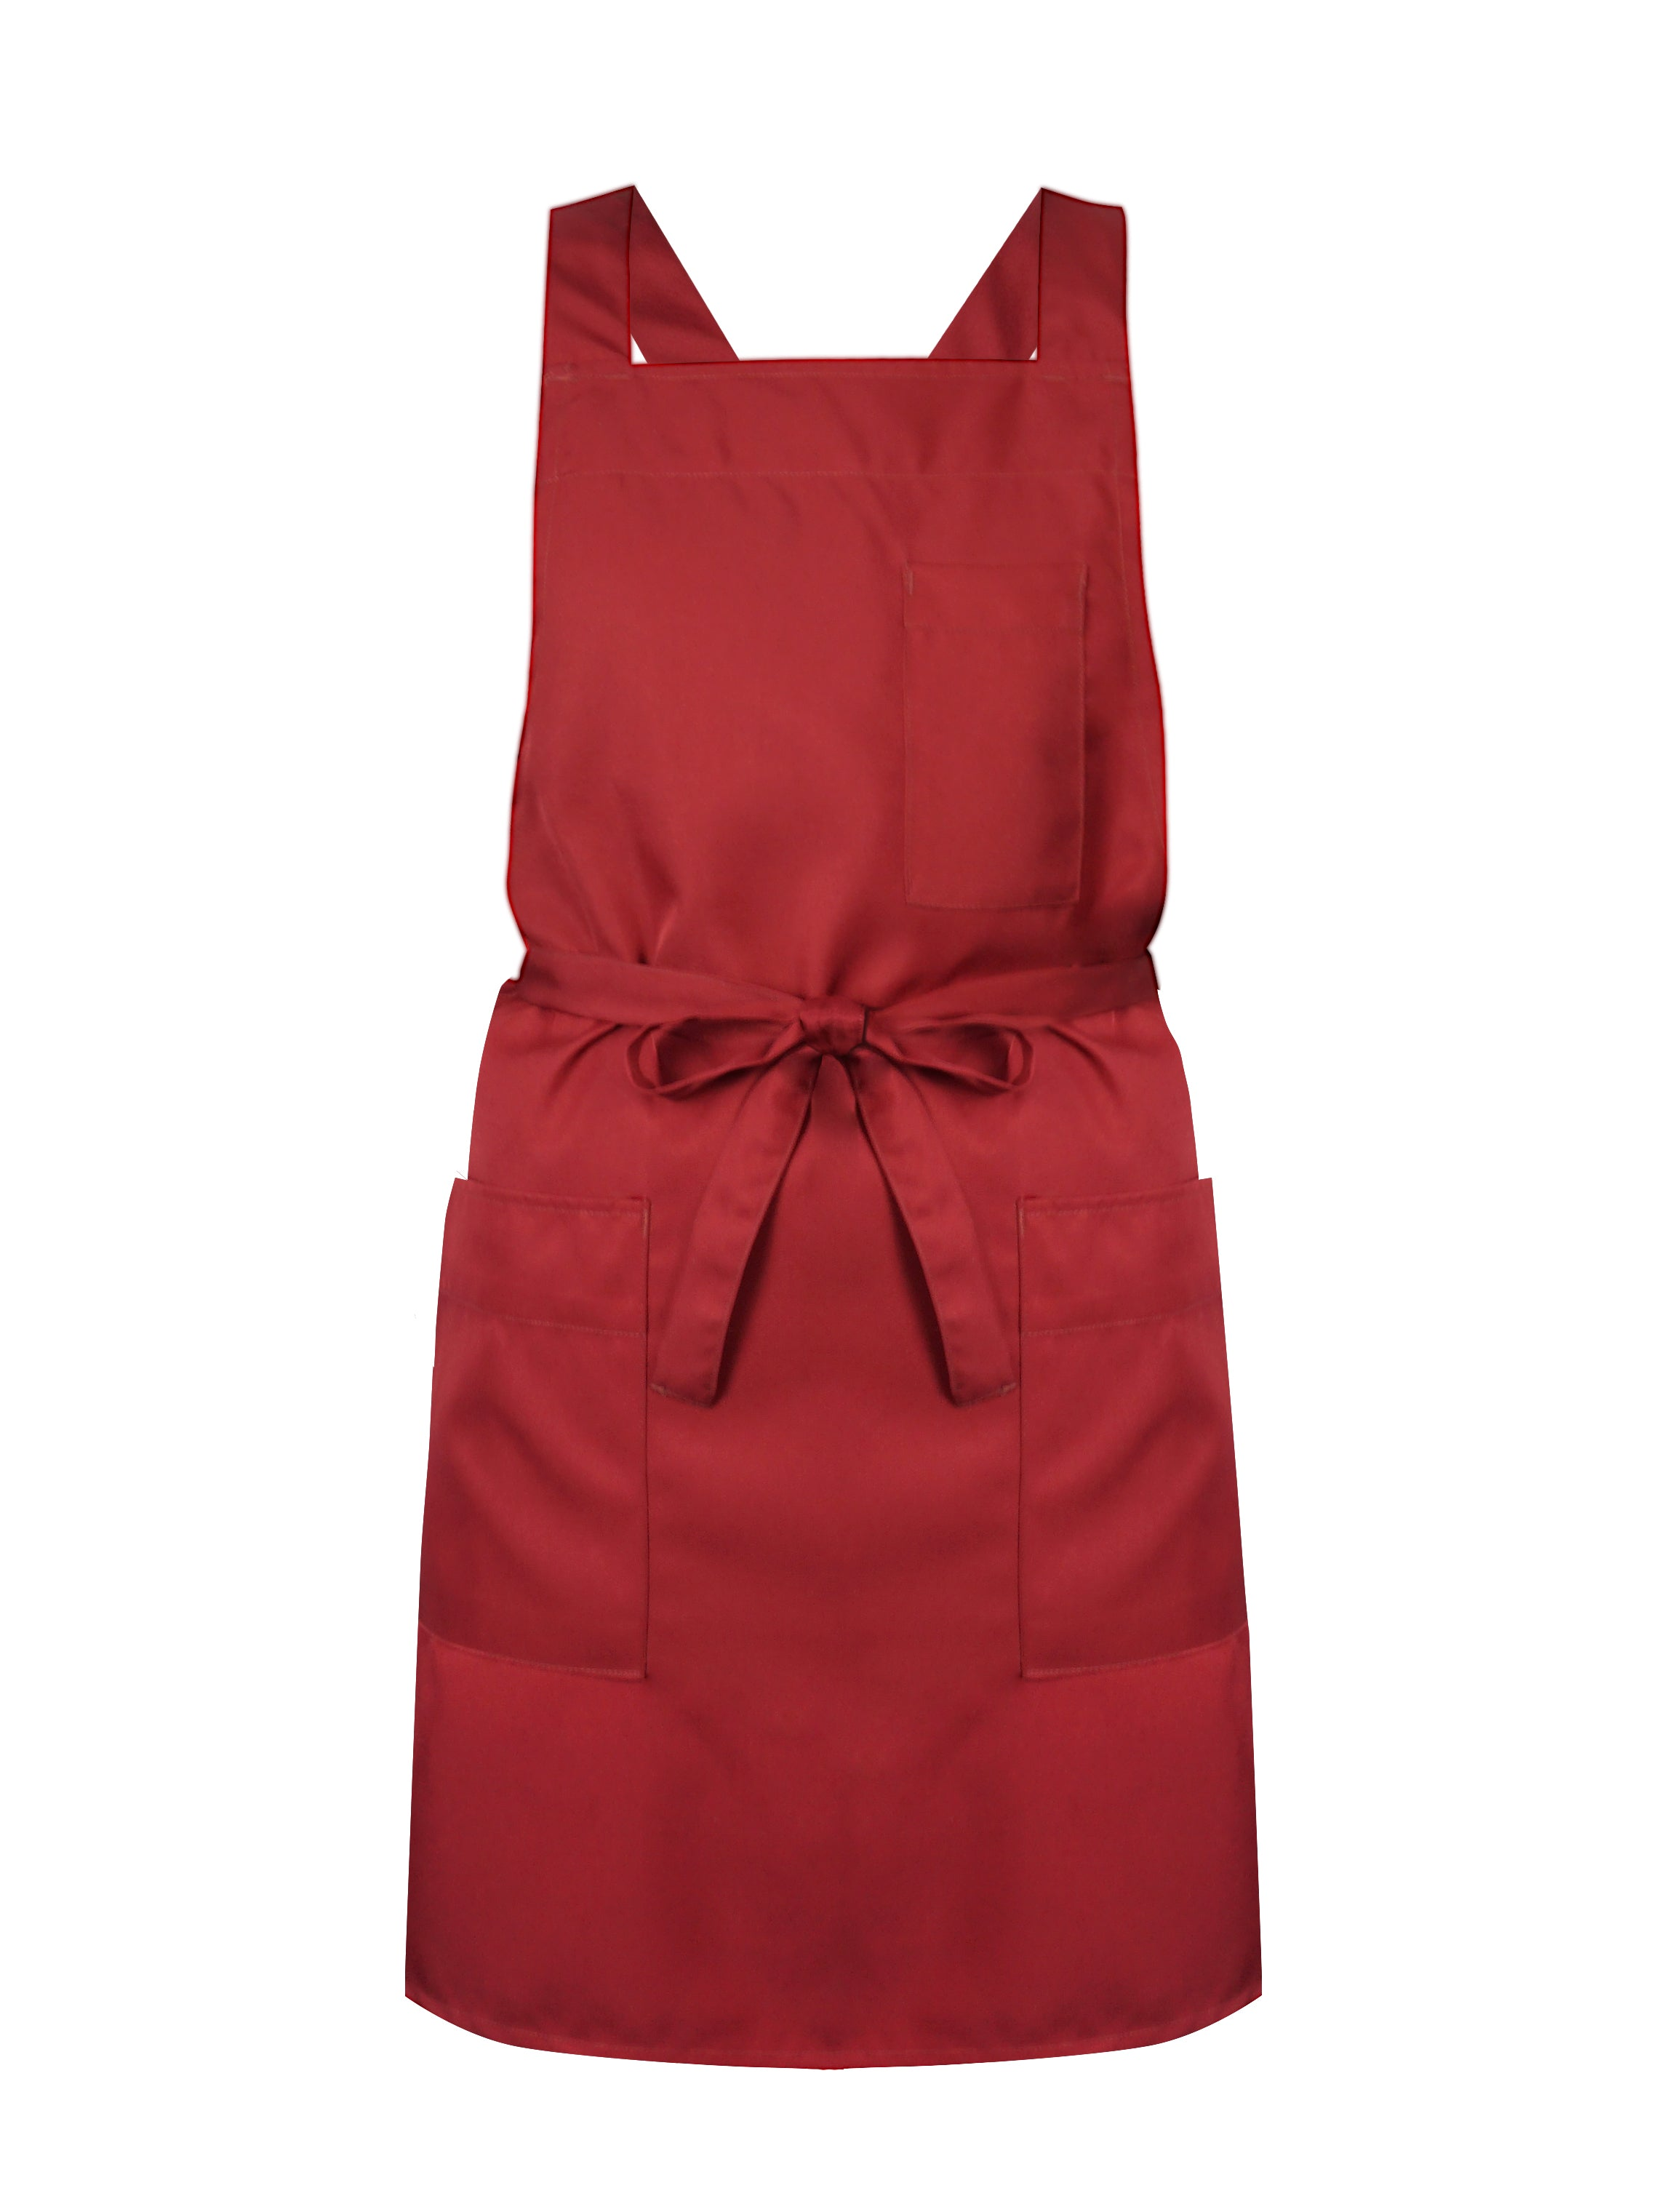 Red Maroon Bib Apron Crossed Back